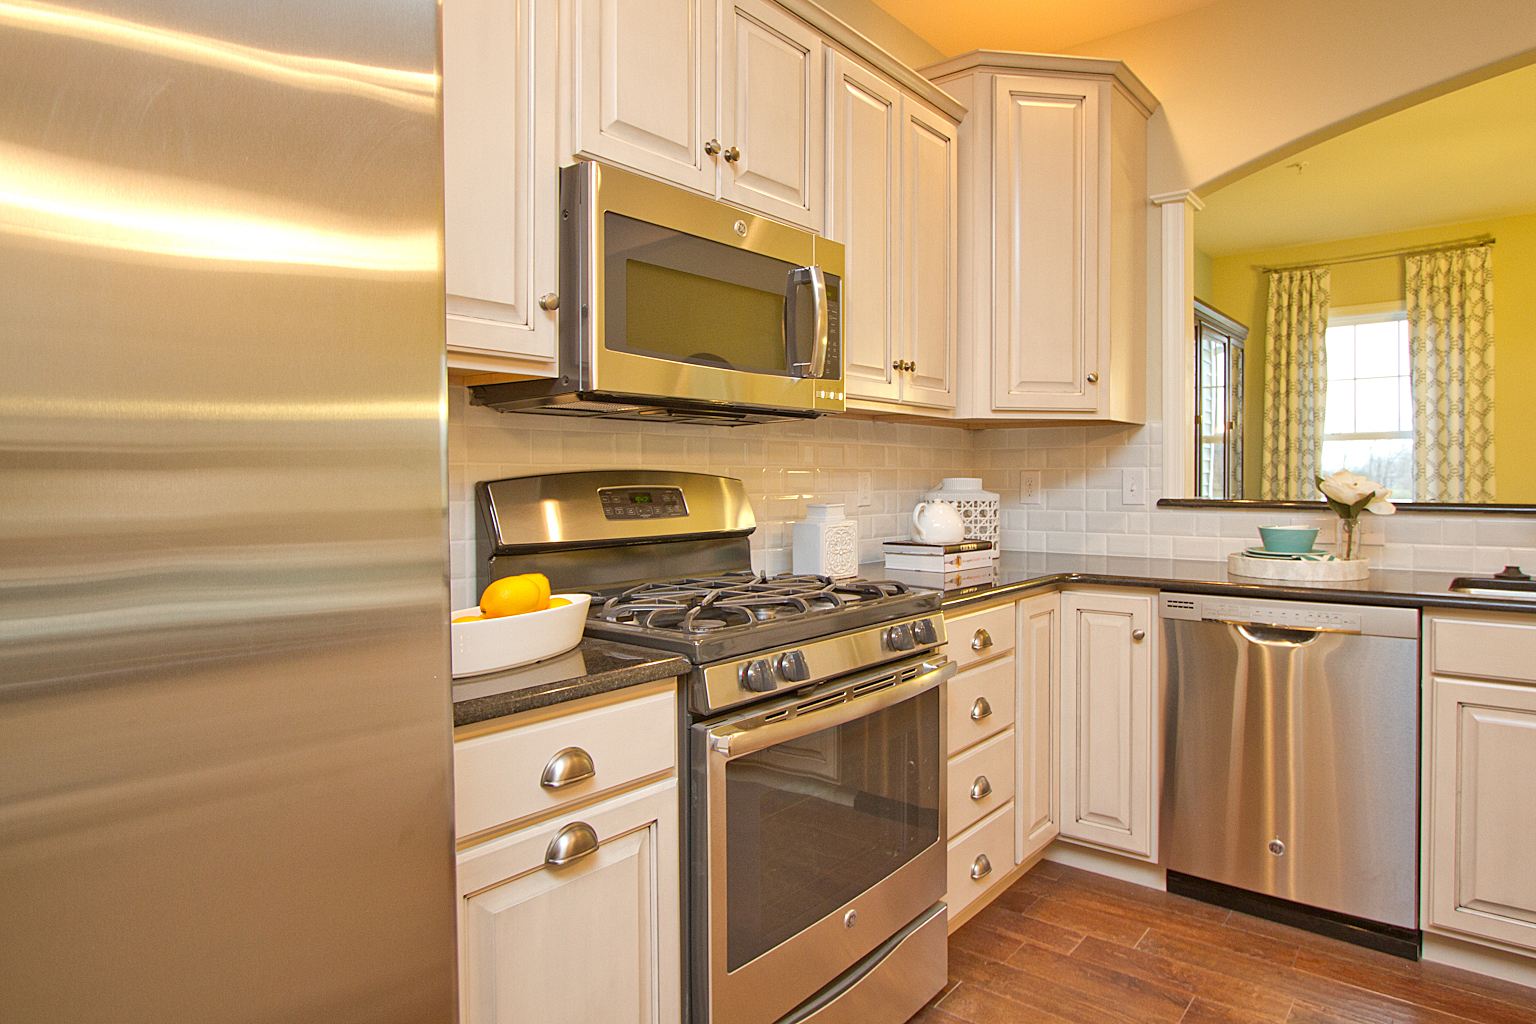 Lititz Reserve Addison - Appliances